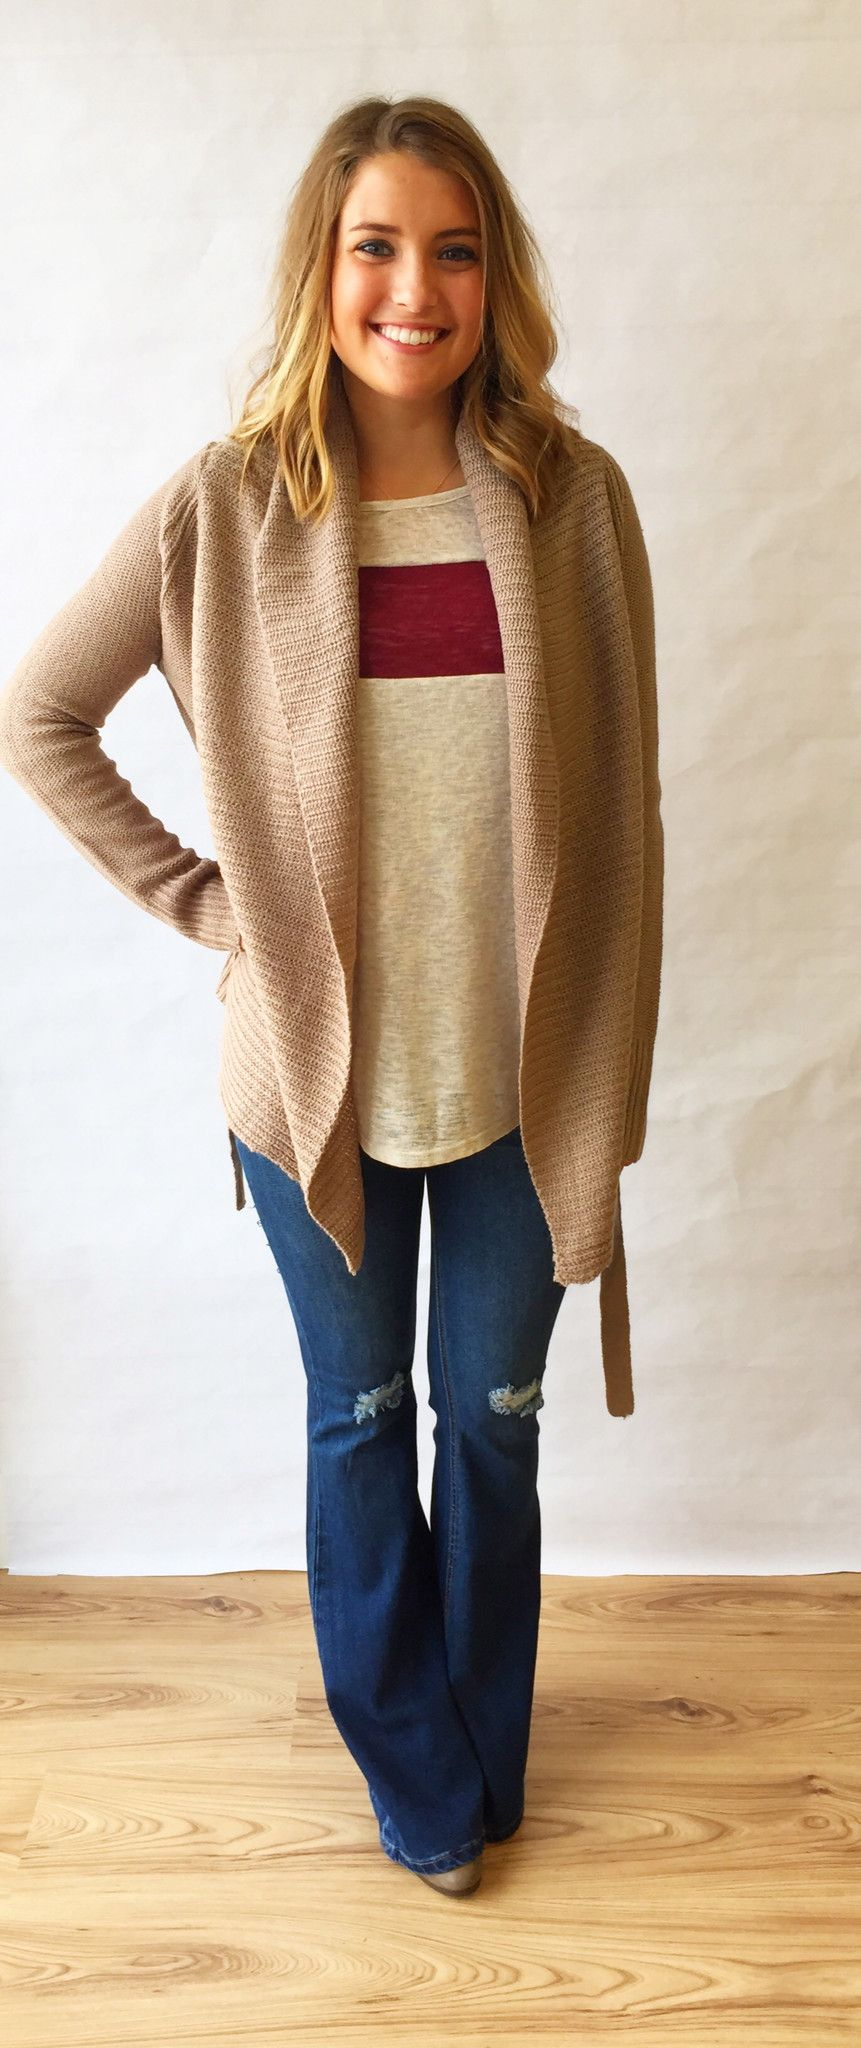 Oatmeal and Wine Color Knit Top - The Style Bar Boutique  - 4